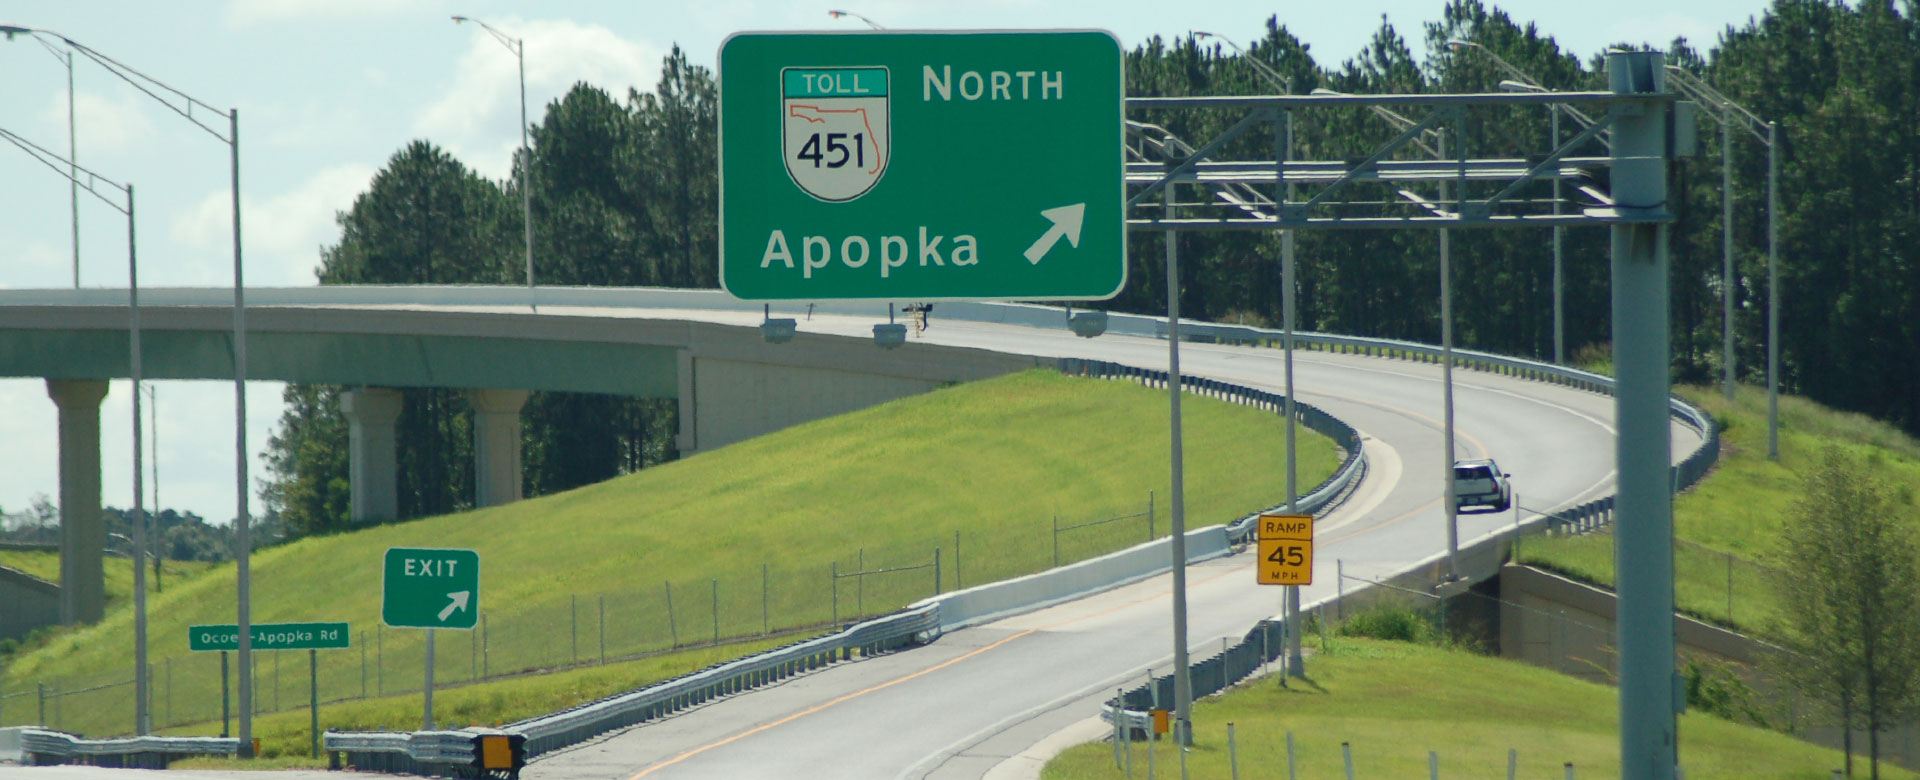 Exit road sign for Central Florida Expressway toll road 451 North to Apopka